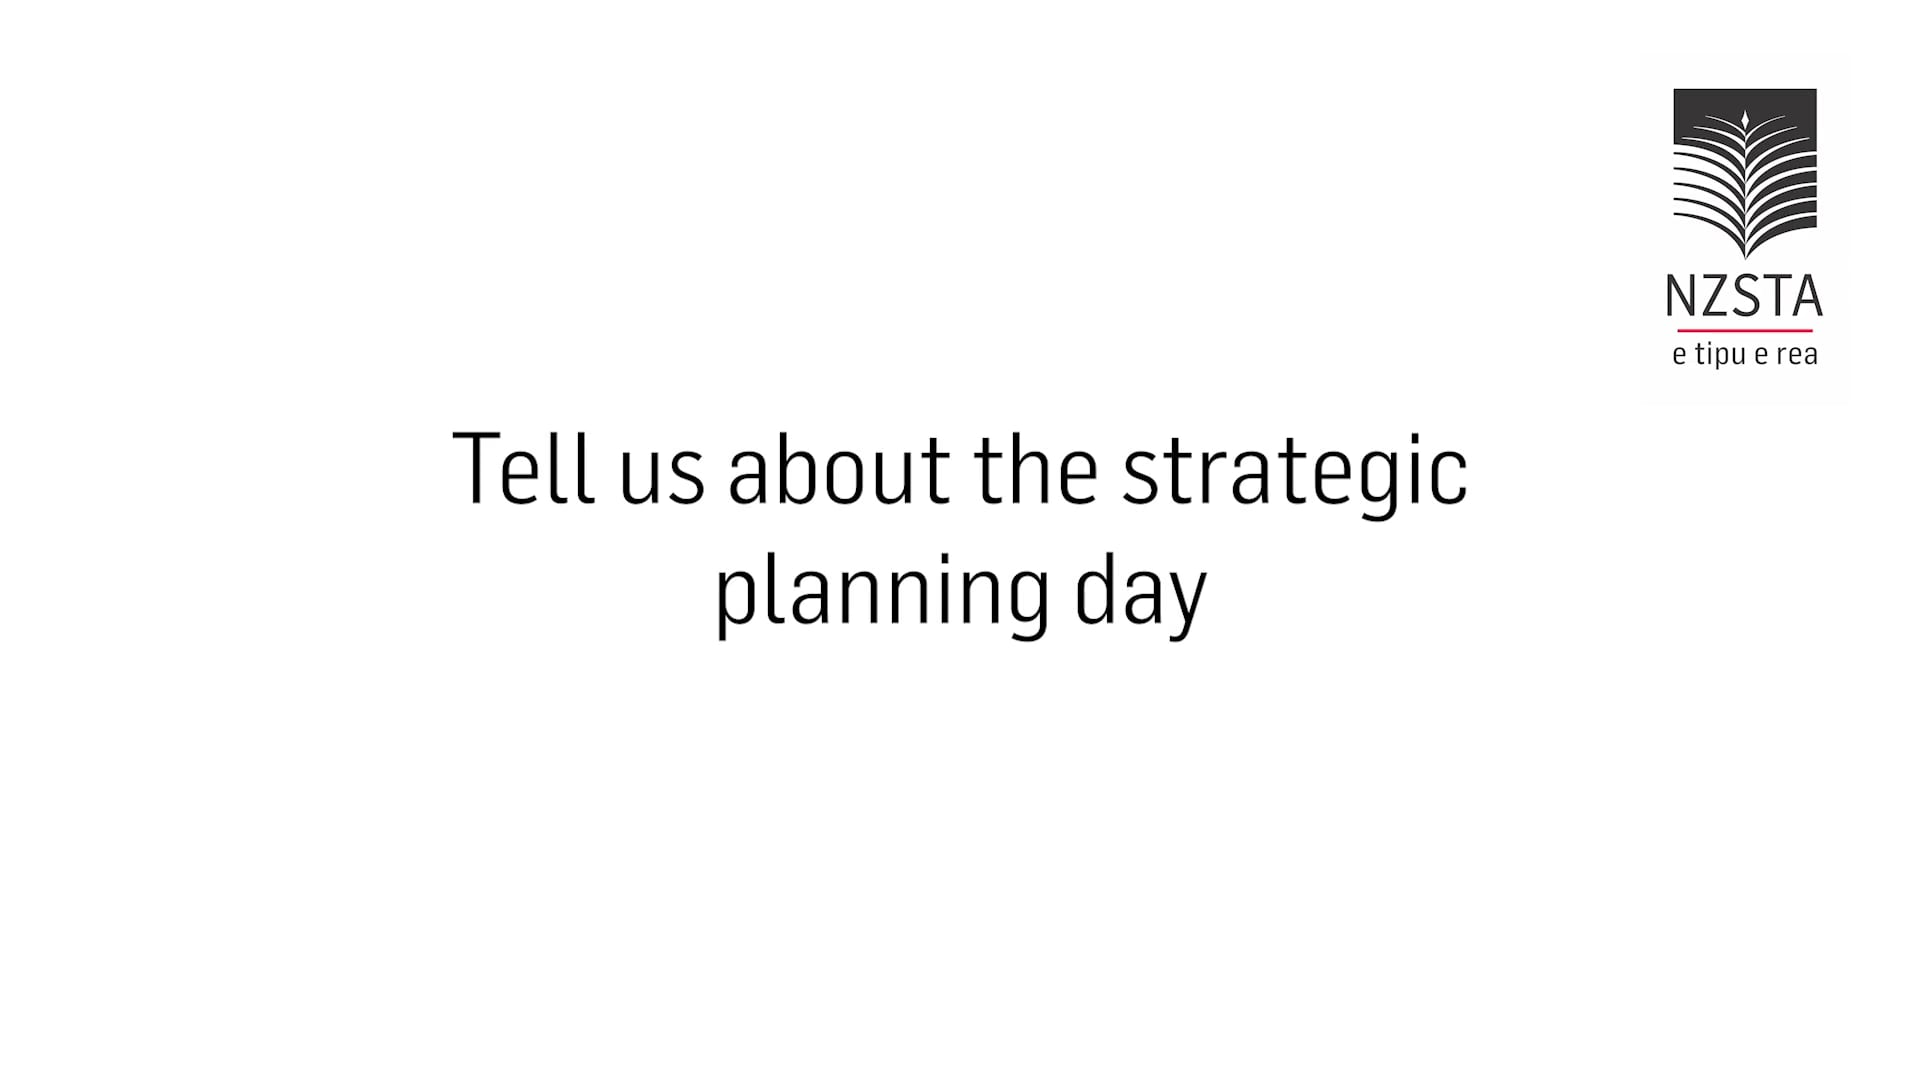 About the strategic planning day